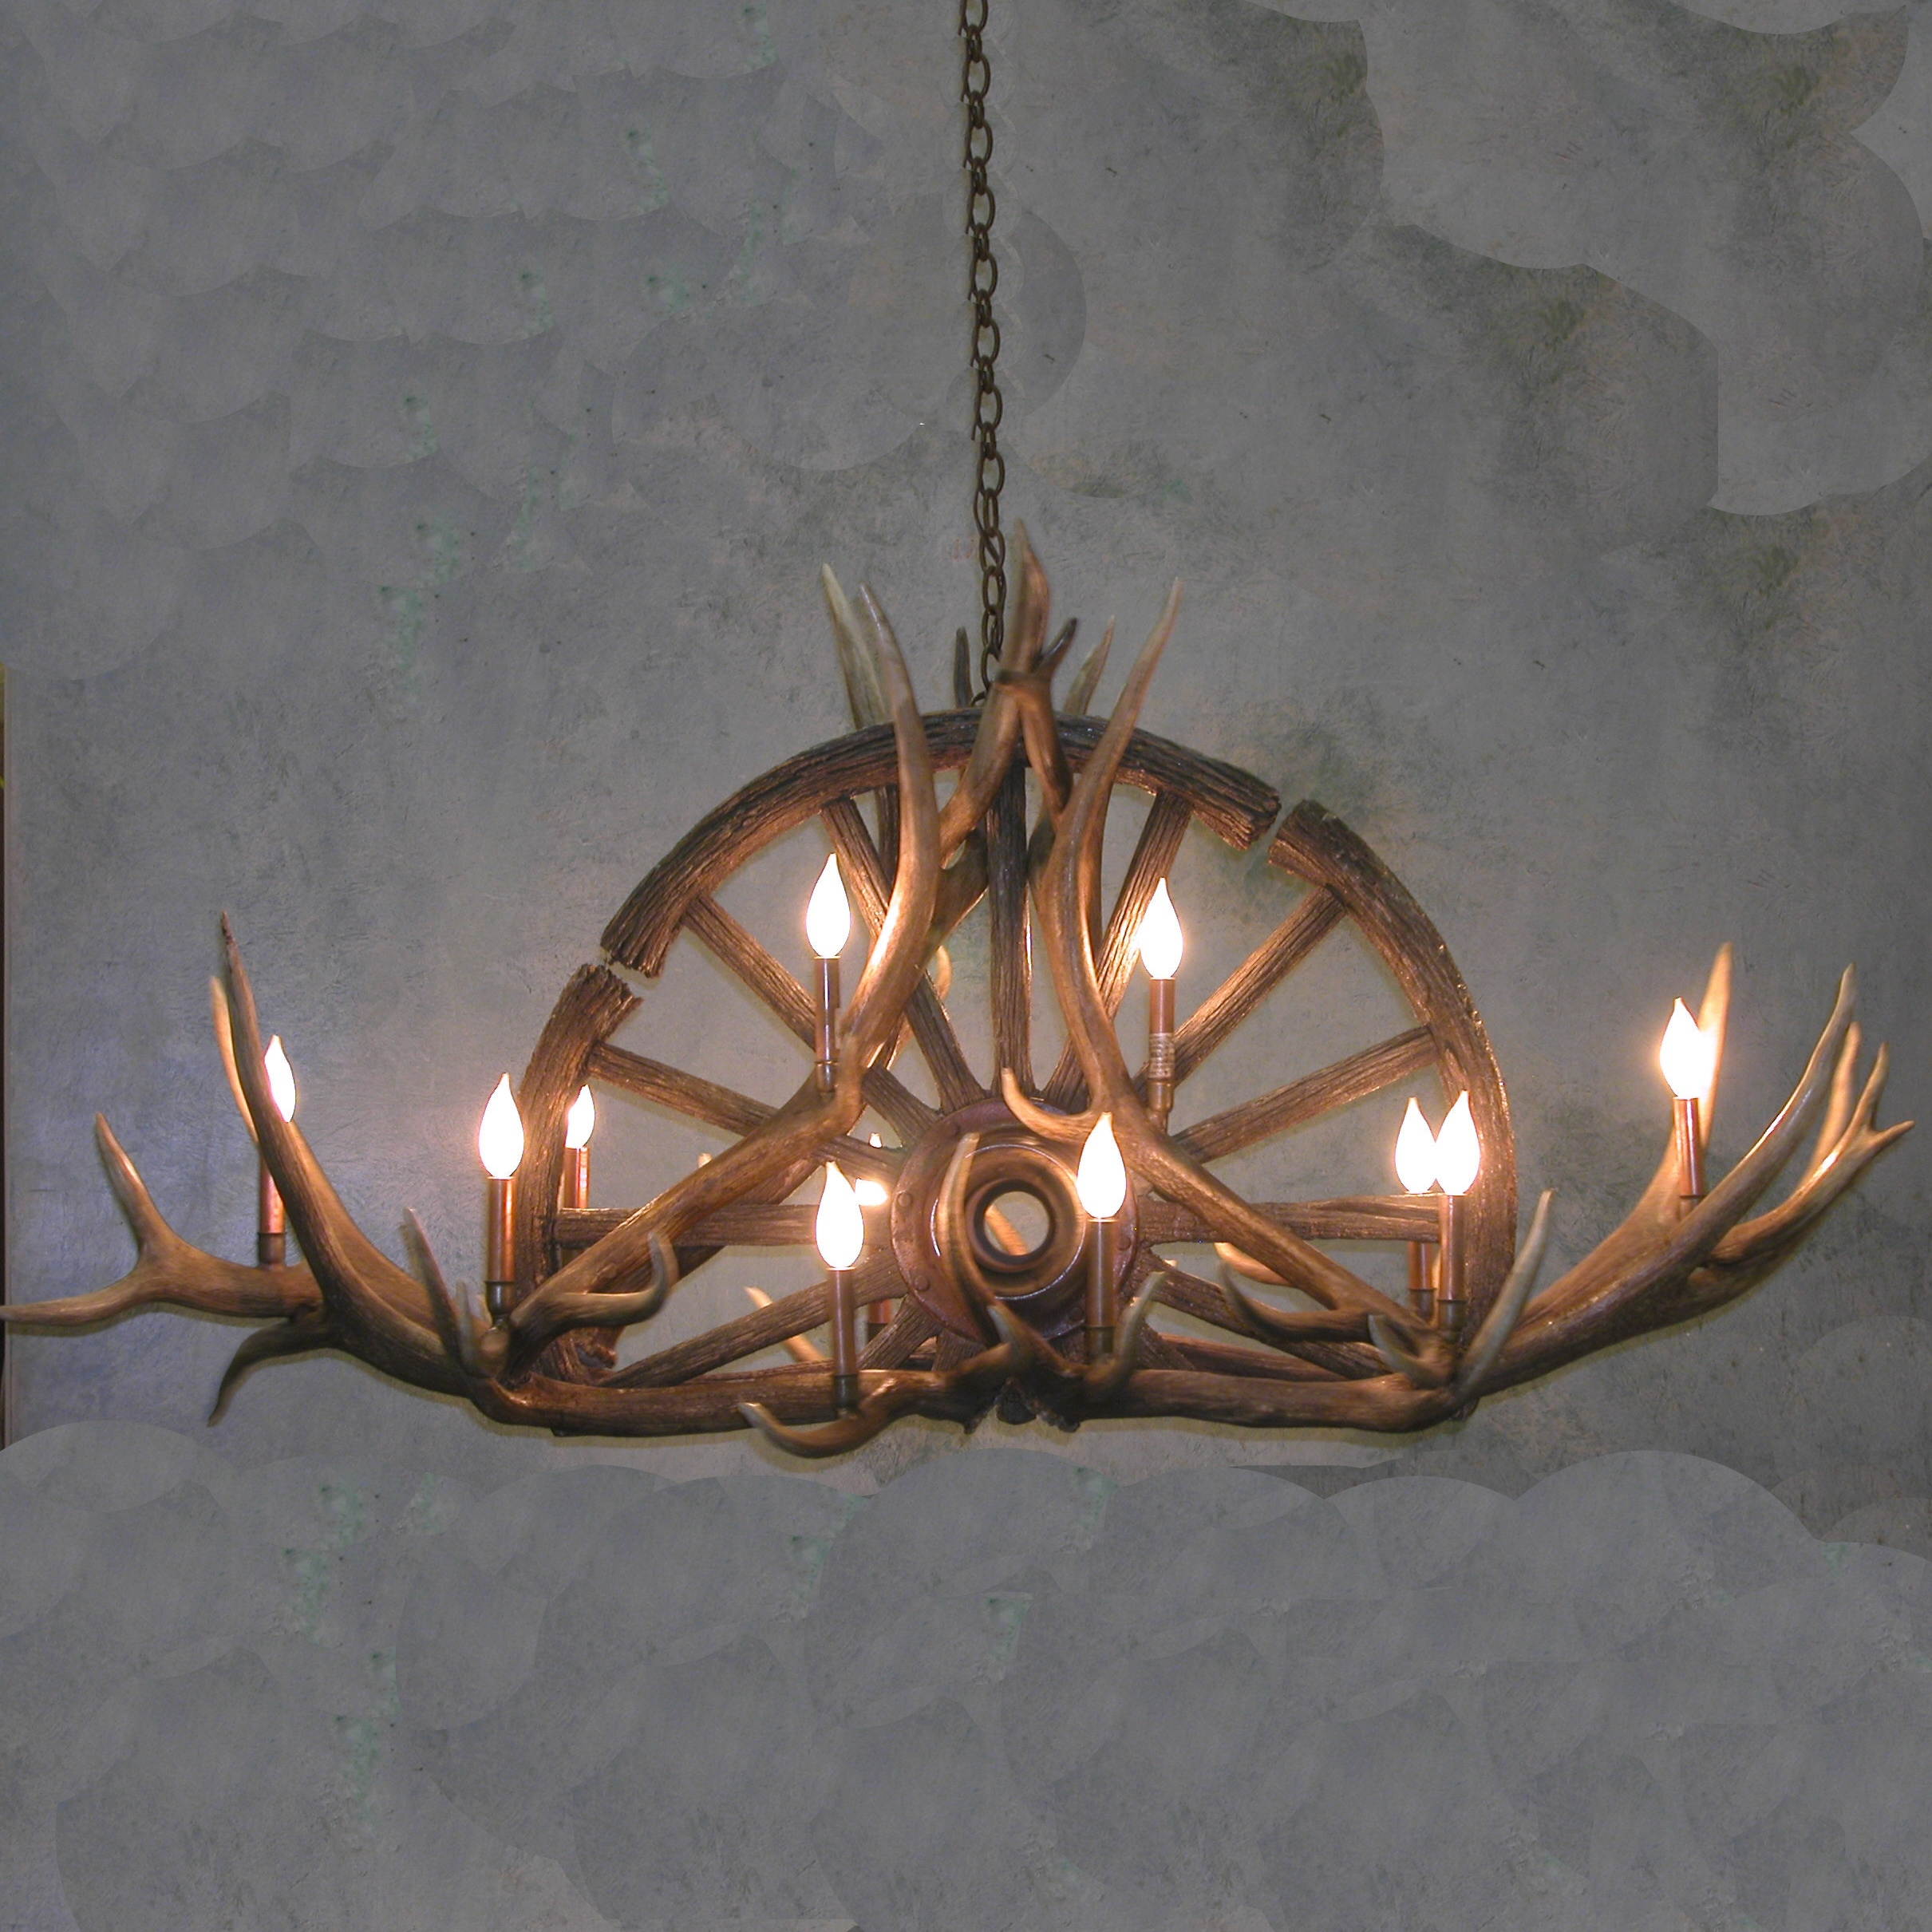 Sundial Wagon Wheel Antler Chandelier Throughout Antlers Chandeliers (Image 12 of 15)